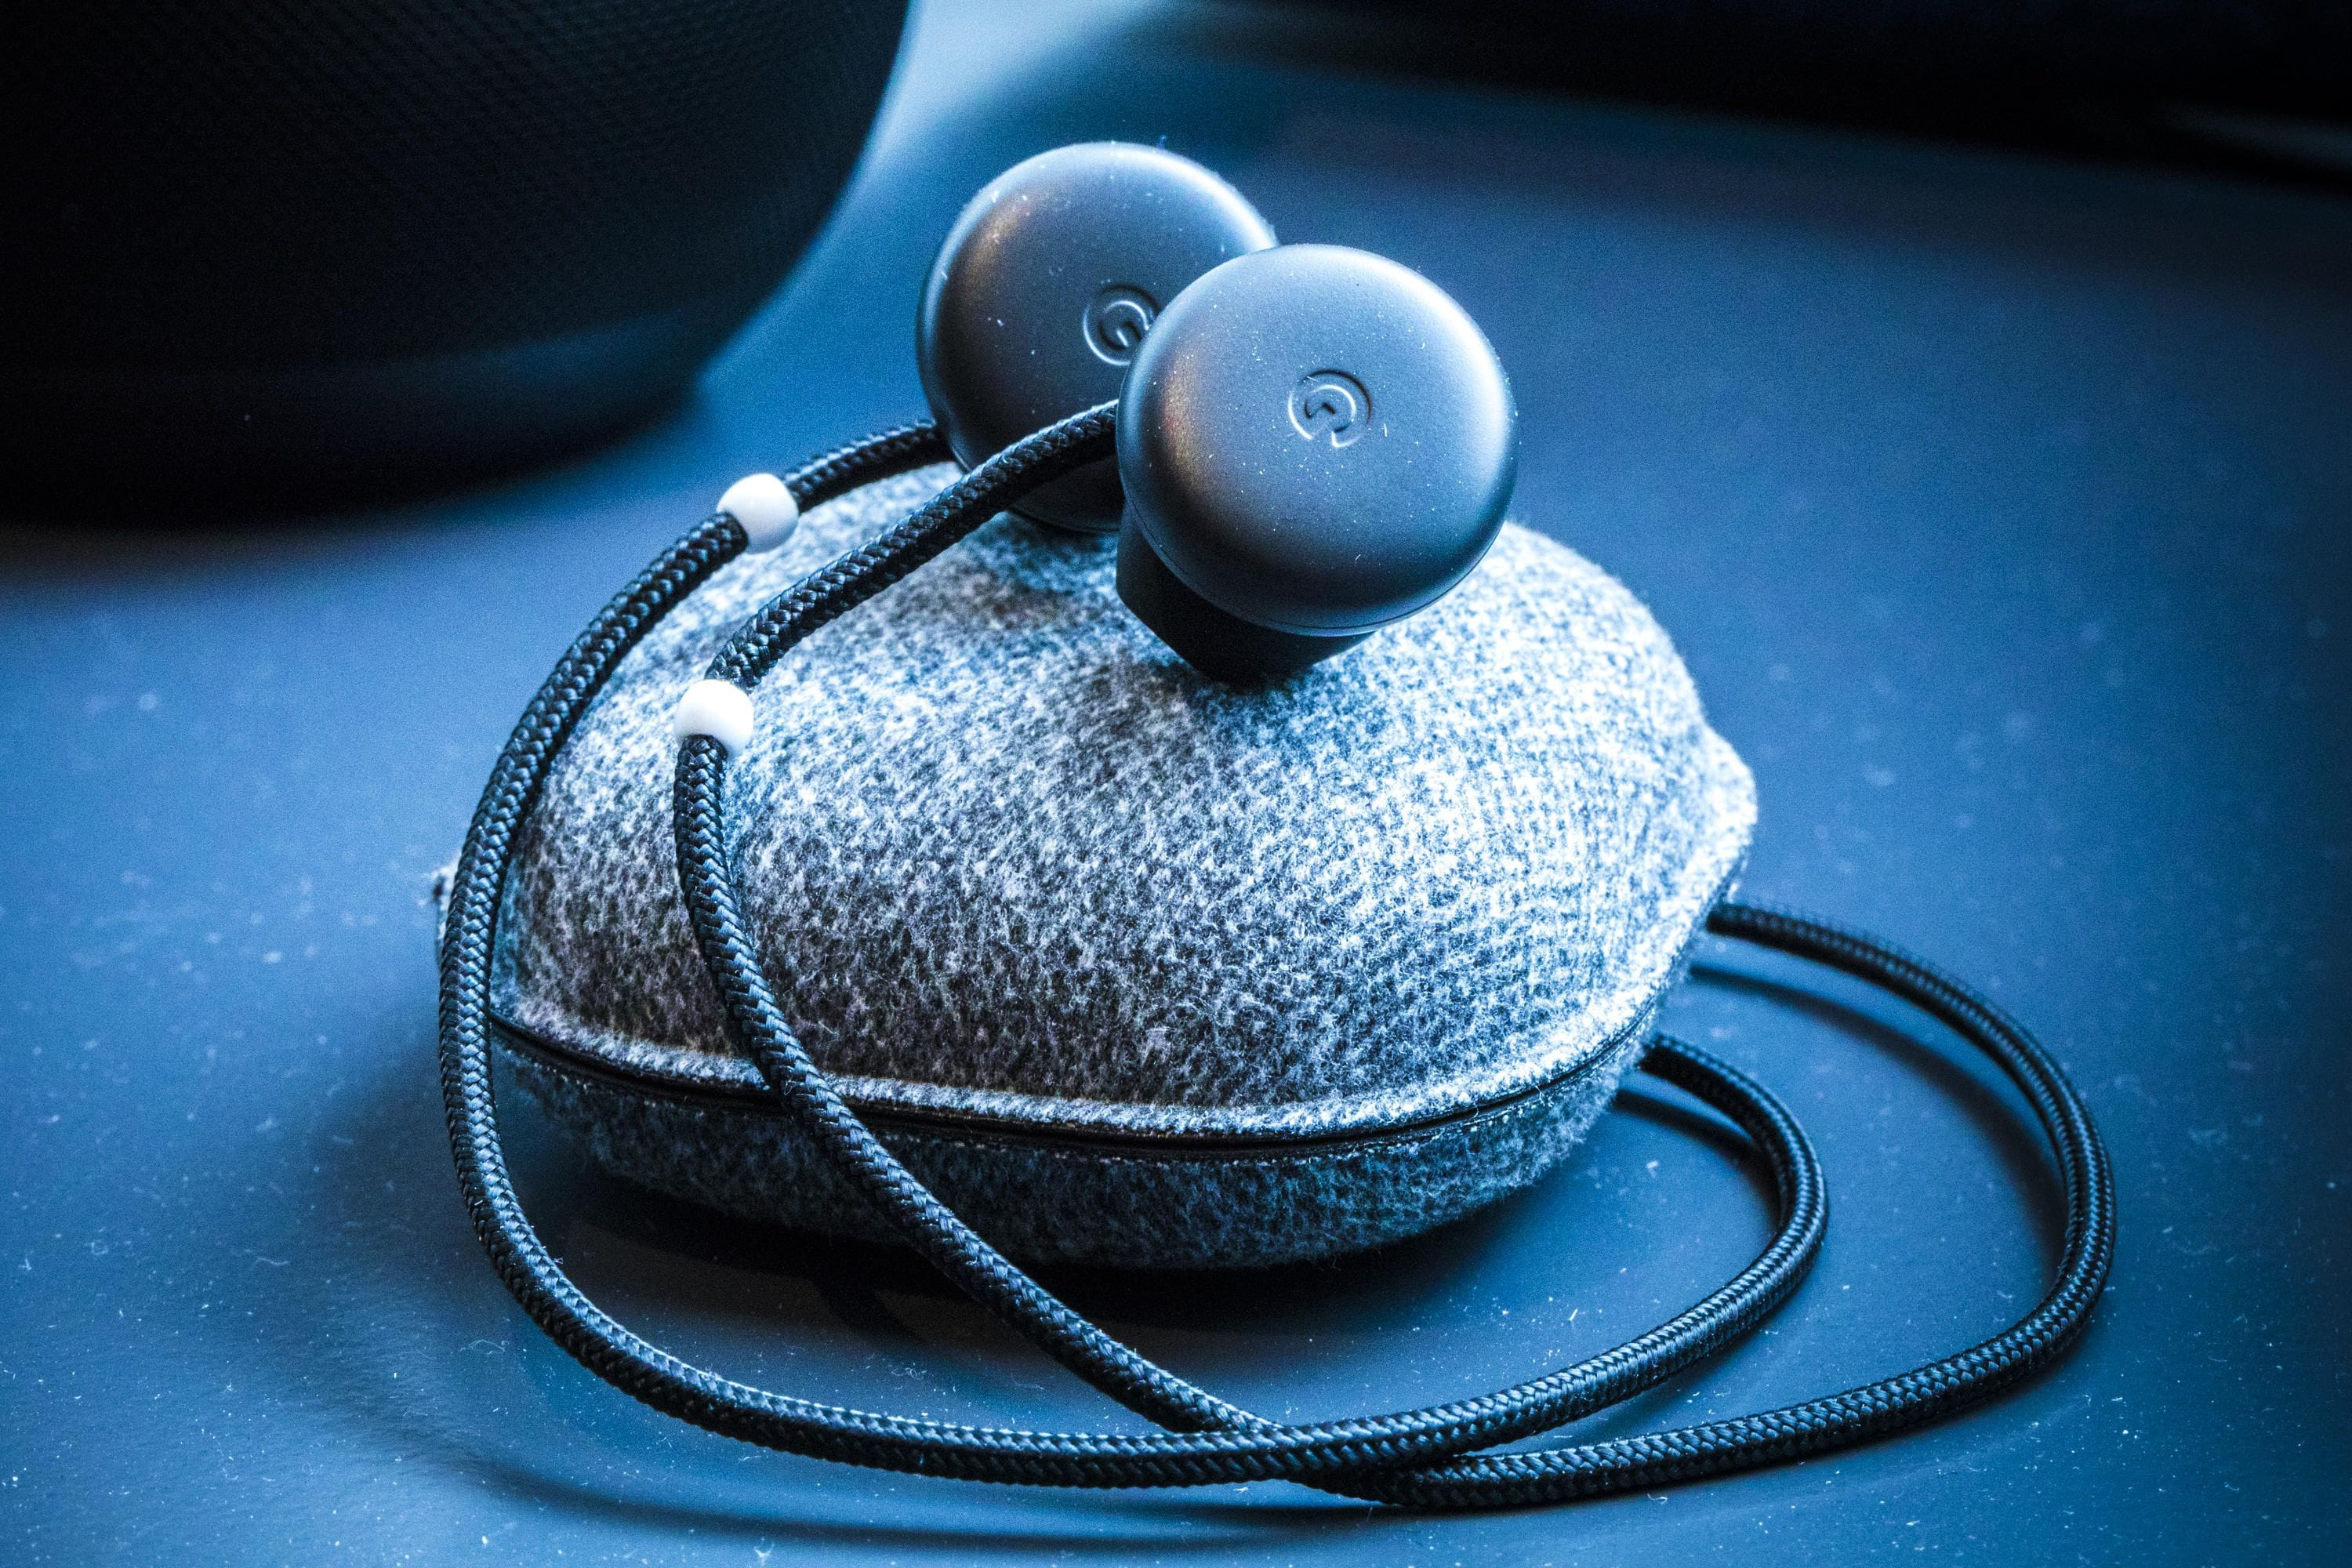 pixel buds google launch